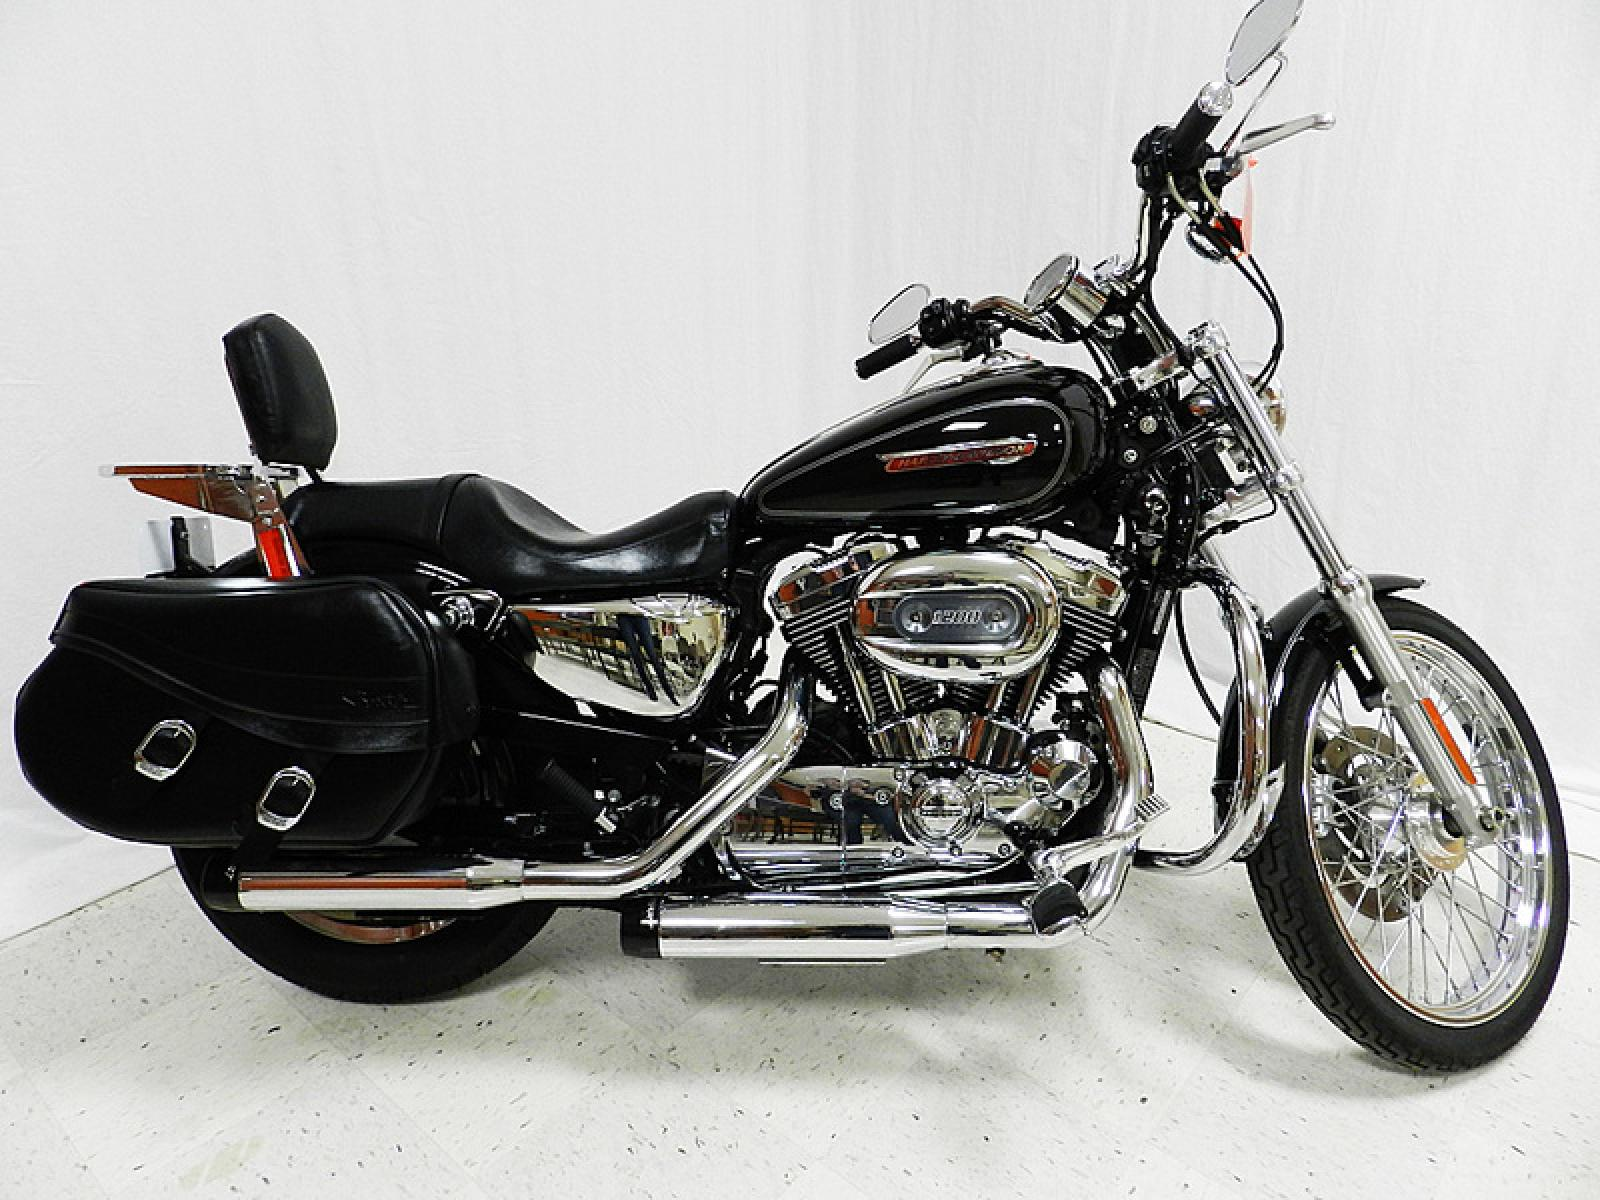 2008 harley davidson xl1200c sportster 1200 custom moto zombdrive com. Black Bedroom Furniture Sets. Home Design Ideas